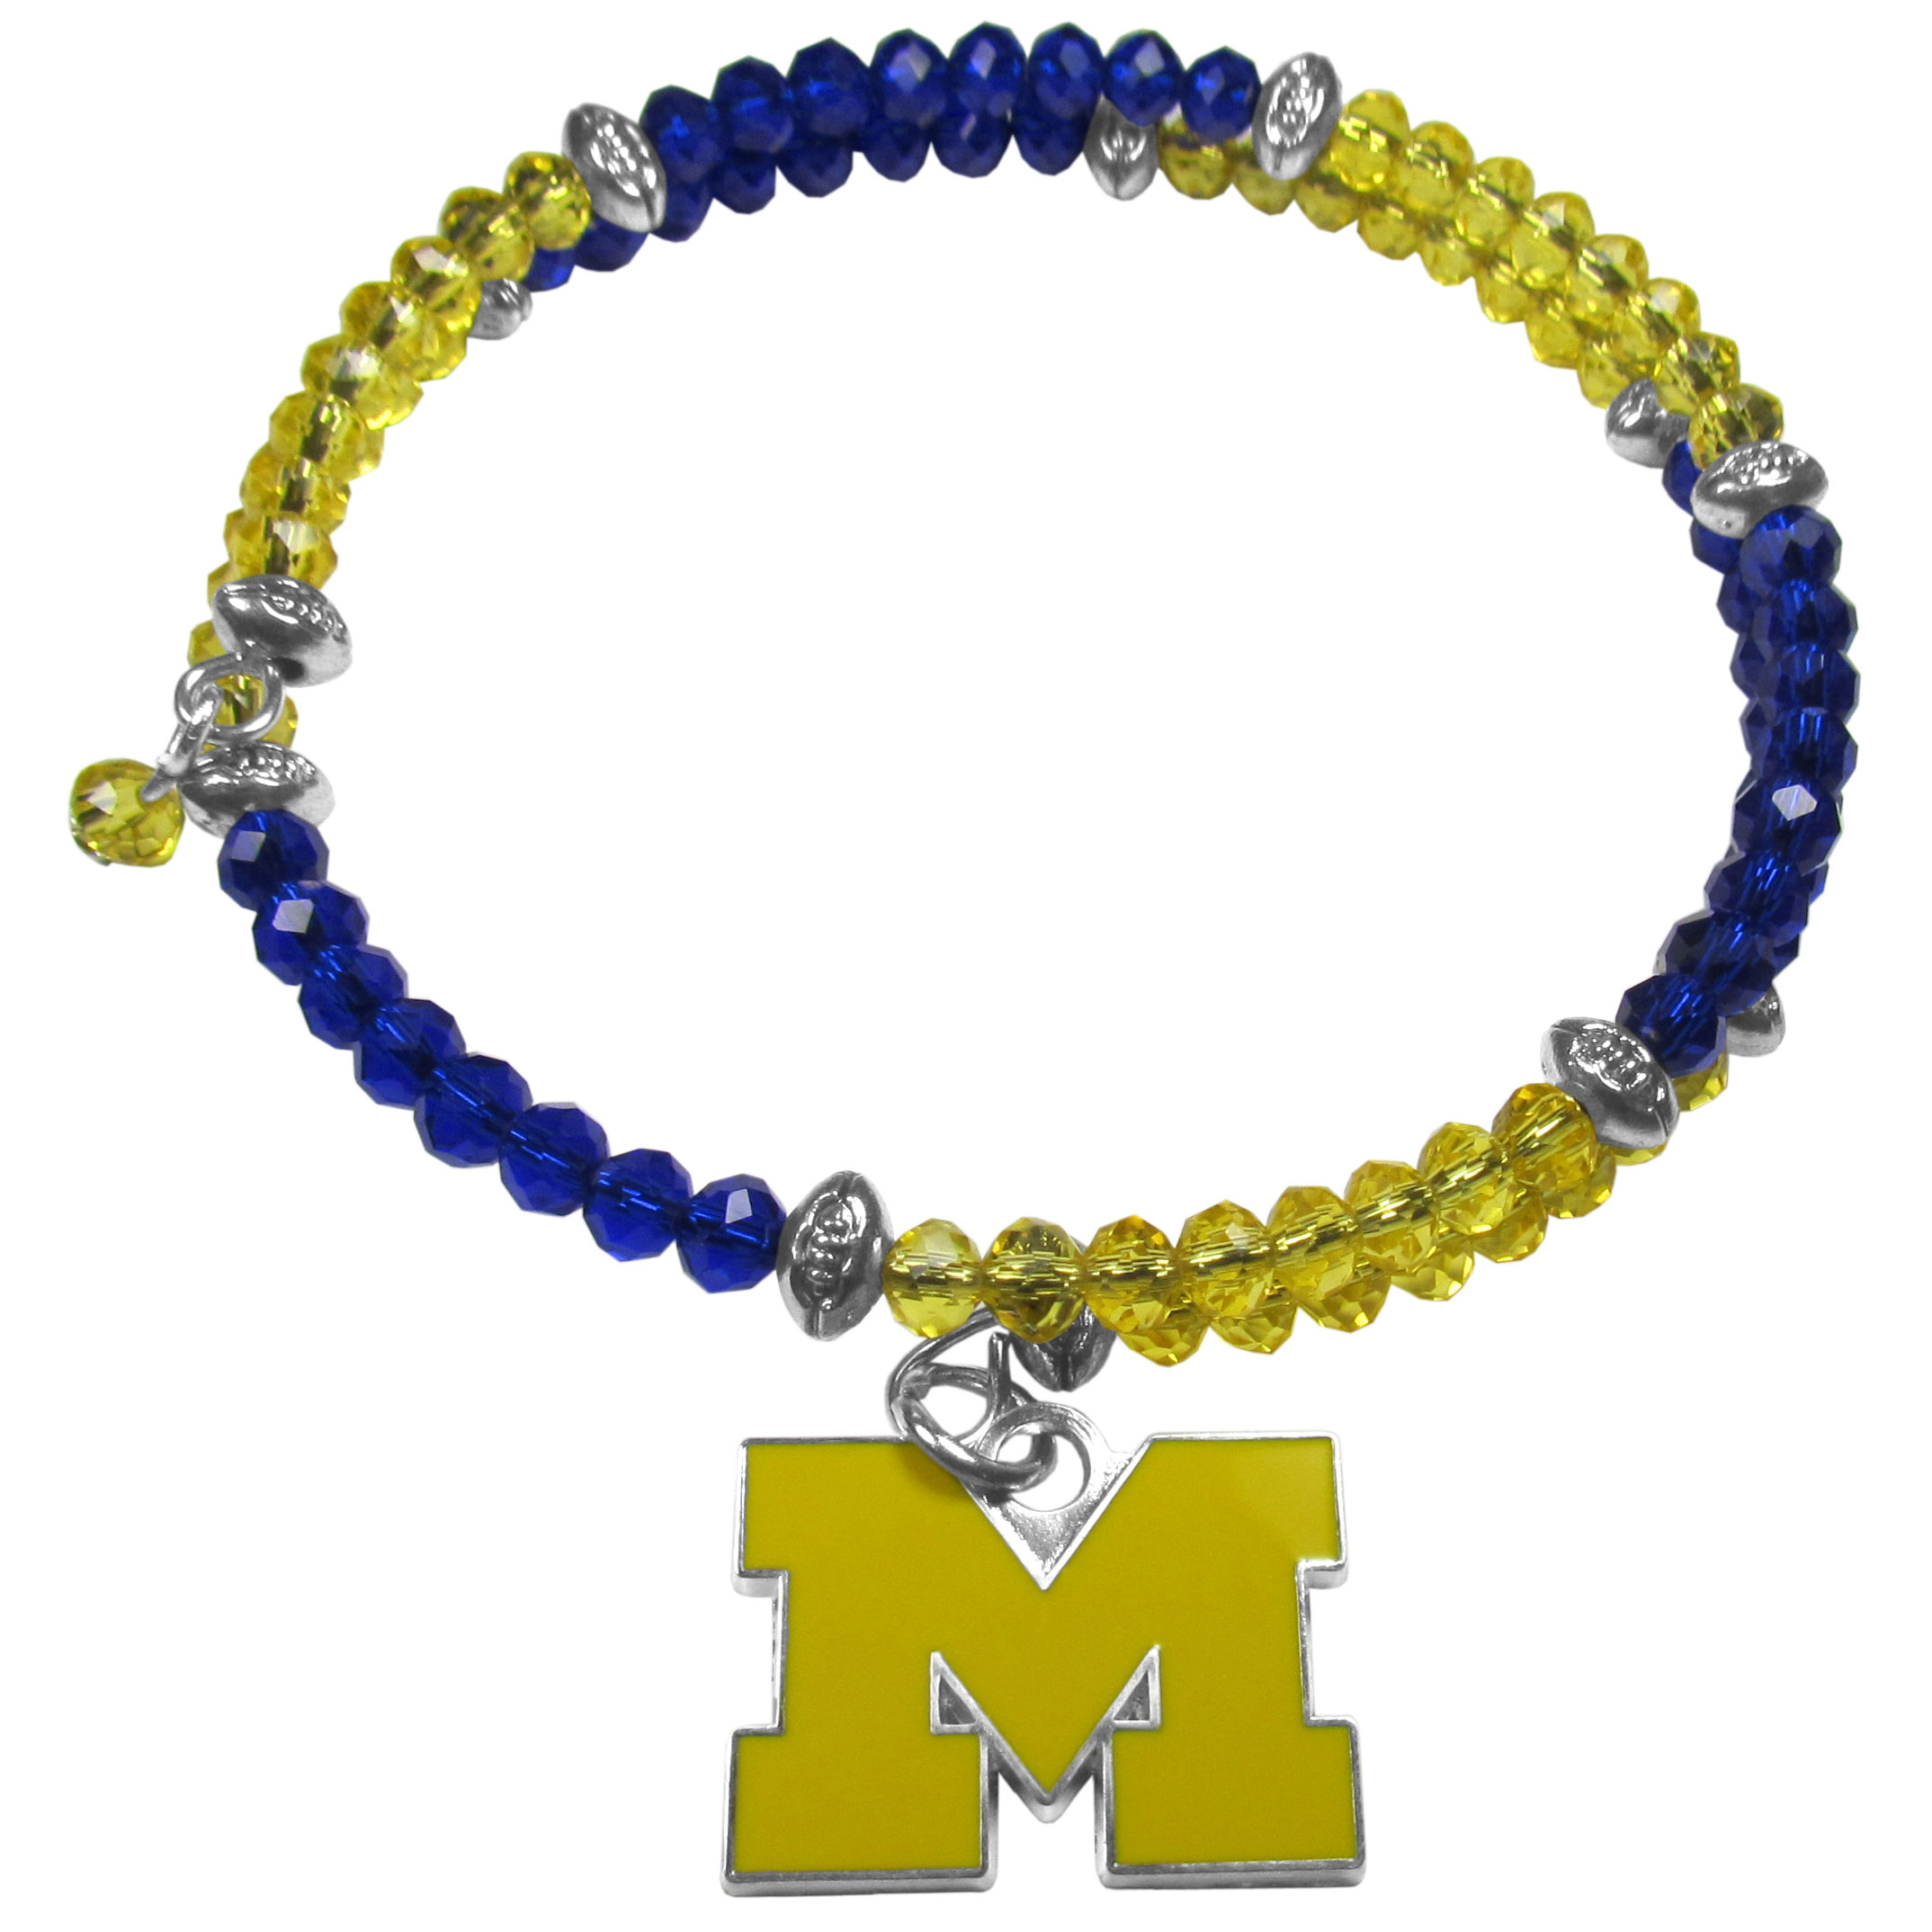 Michigan Wolverines Crystal Memory Wire Bracelet - Our Michigan Wolverines memory wire crystal bracelet is trendy way to show off your love of the game. The double wrap bracelet is completely covered in 4 mm crystals that are broken up with adorable football beads creating a designer look with a sporty twist. The bracelet features a fully cast, metal team charm that has expertly enameled team colors. This fashion jewelry piece is a must-have for the die-hard fan that chic look that can dress up any outfit.